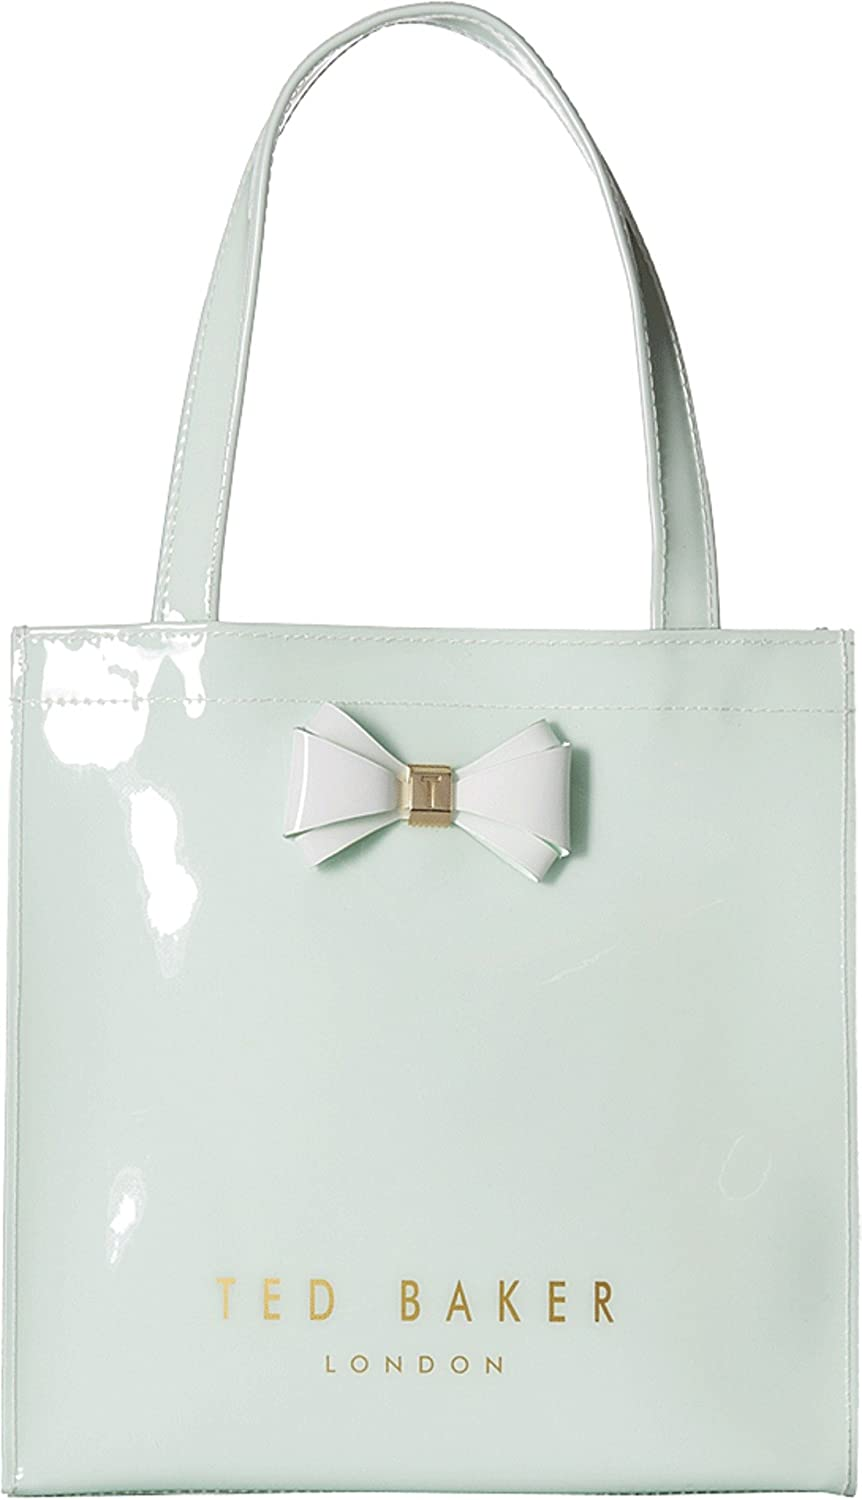 032a16a11769c4 Ted Baker London Women s Aracon Small Shopper Tote Bag (Light Green)   Amazon.in  Shoes   Handbags